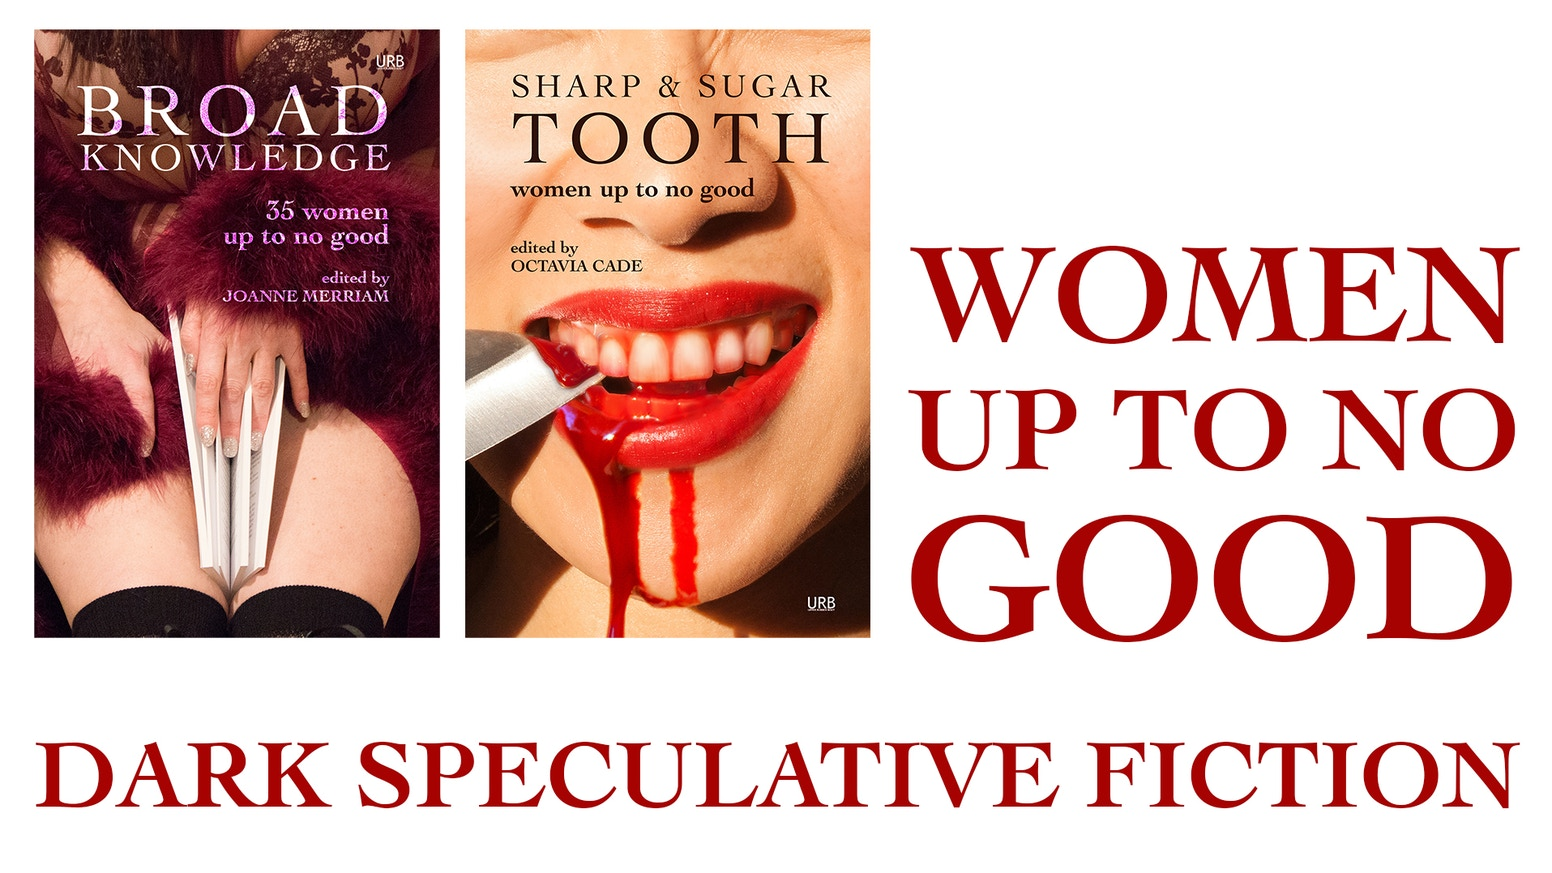 The Women Up To No Good series are anthologies of dark fiction by marginalized voices.